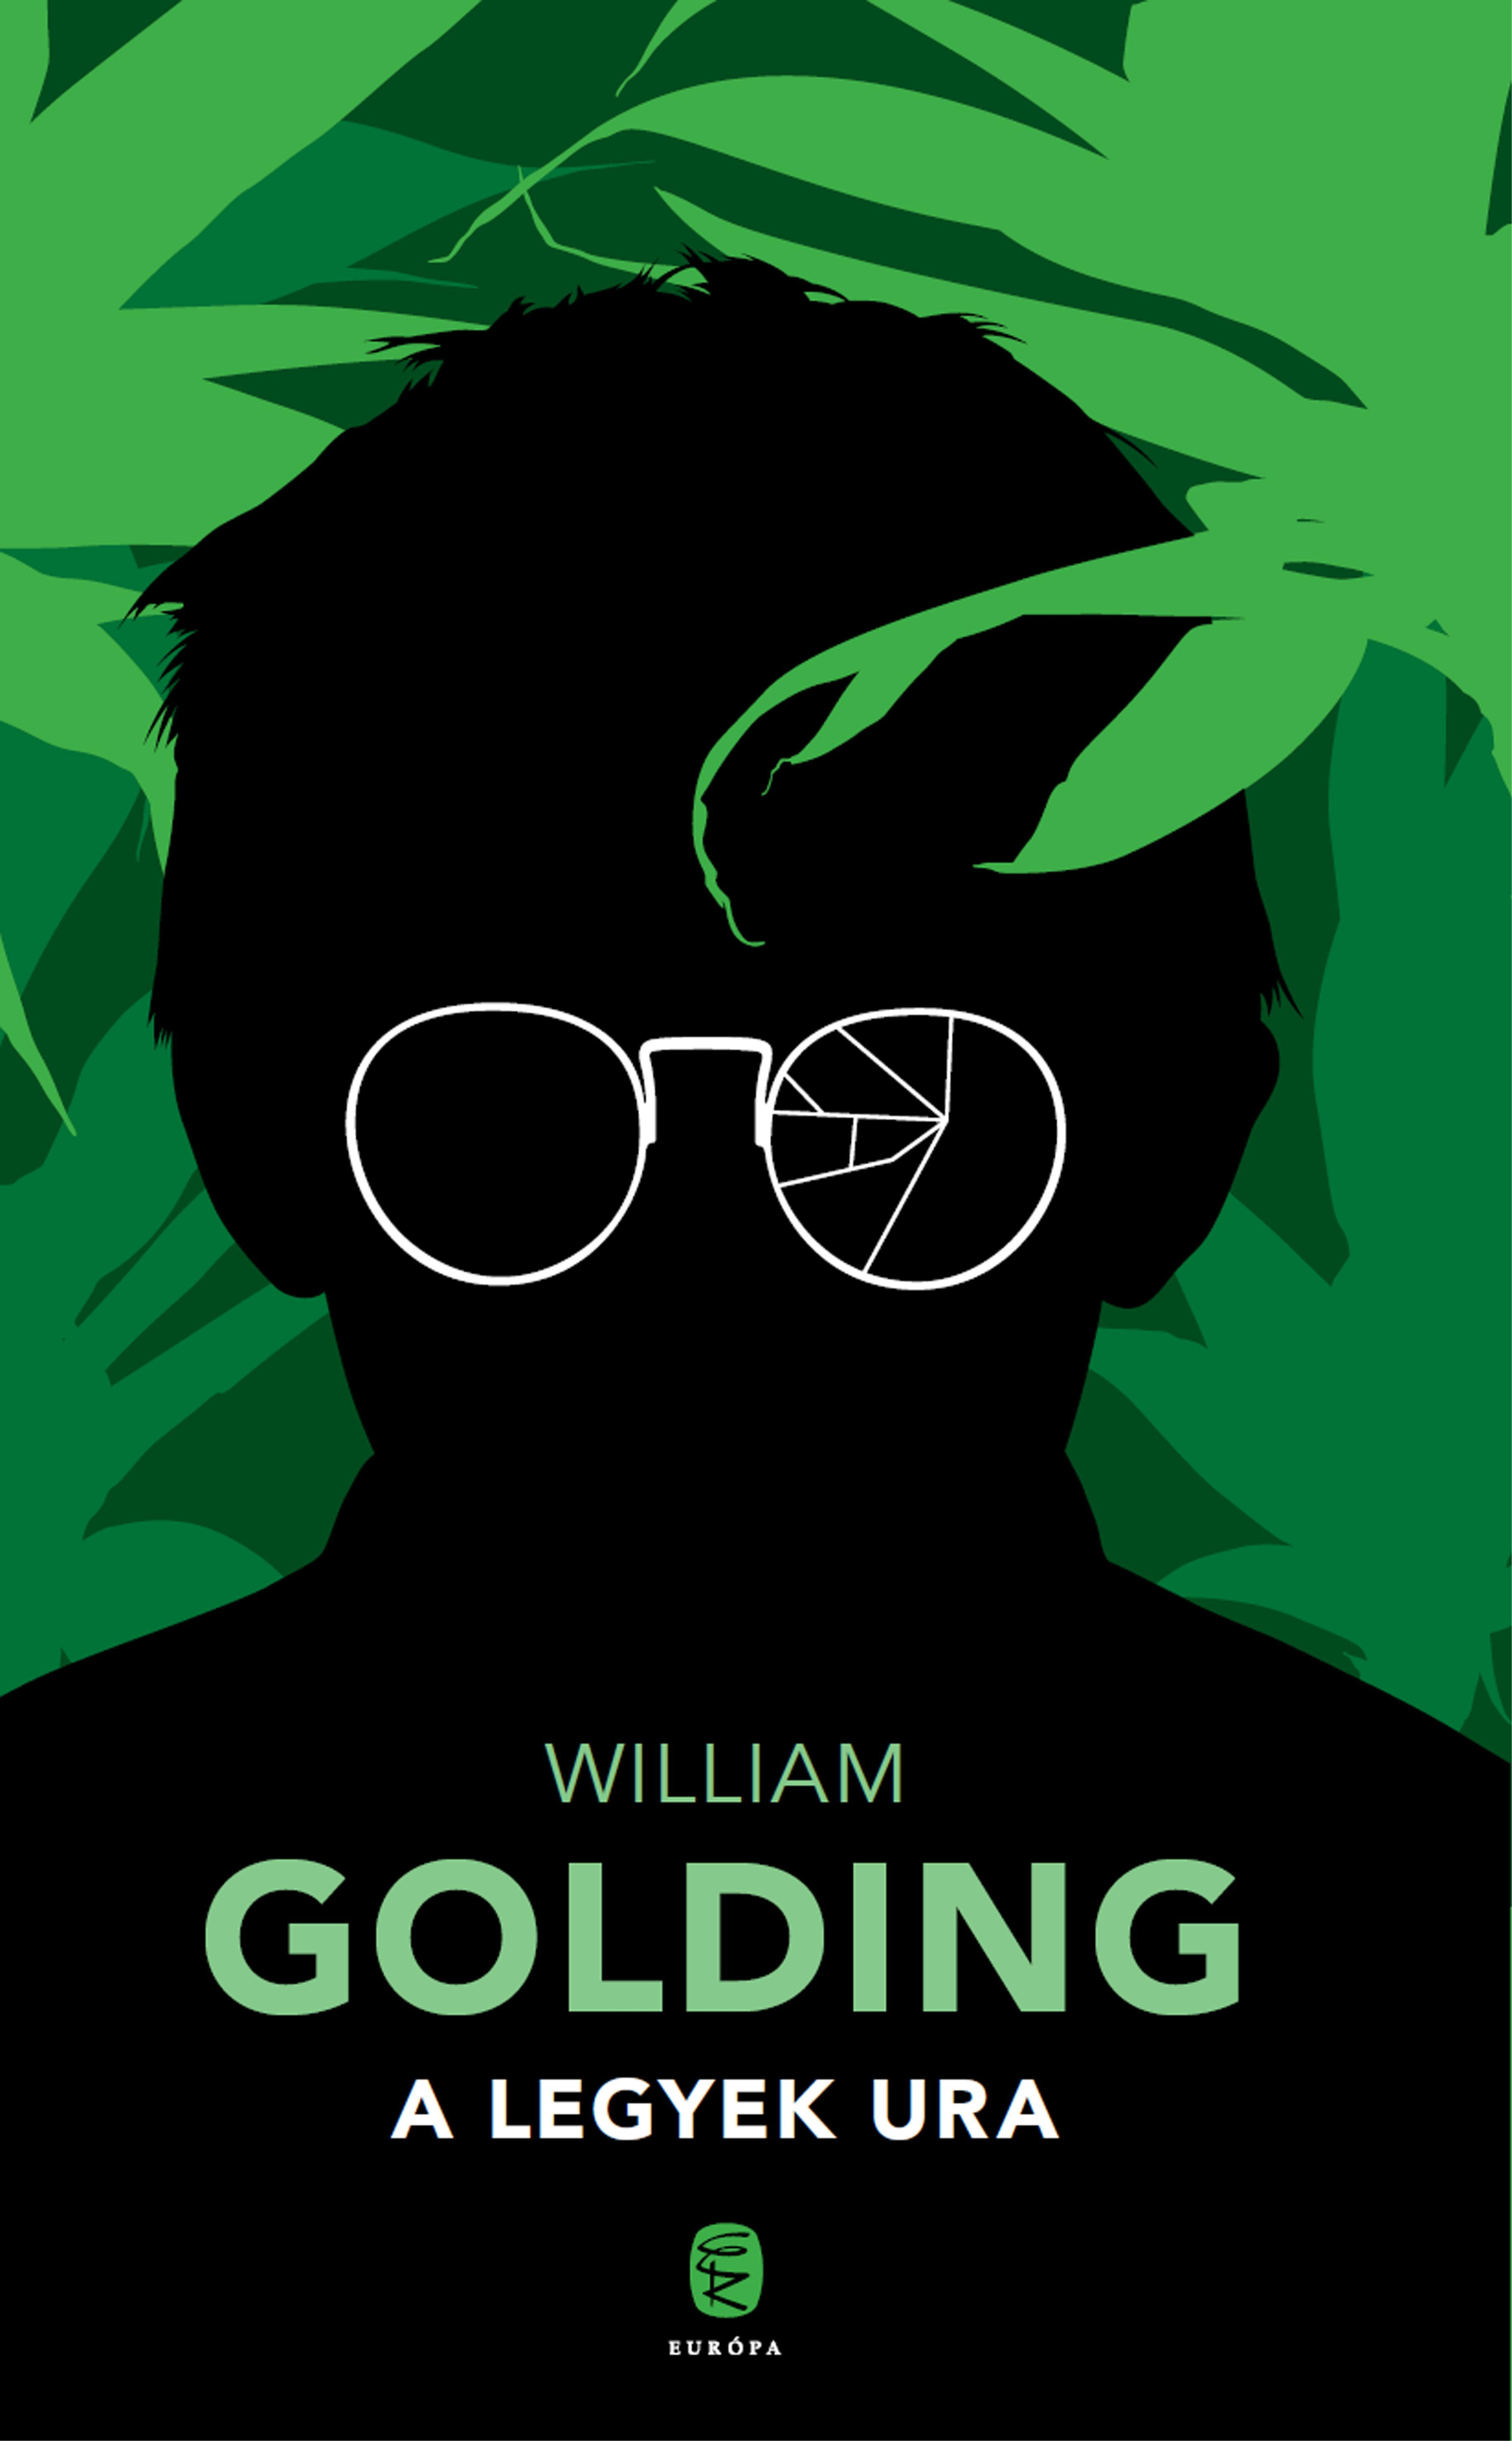 GOLDING, WILLIAM - A LEGYEK URA (2017)